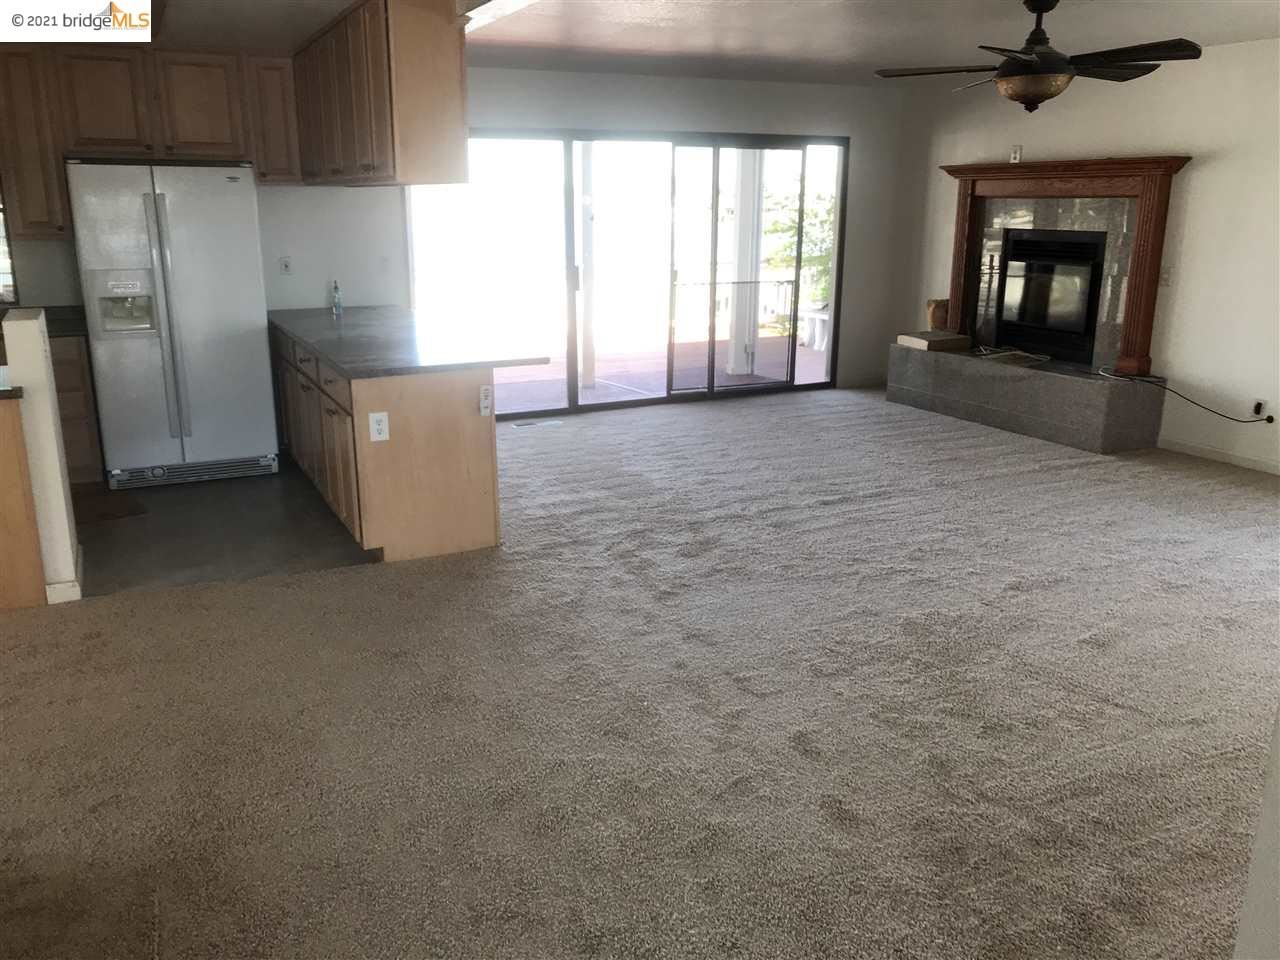 Photo of 1434 Discovery Bay Blvd, DISCOVERY BAY, CA 94505 (MLS # 40933757)